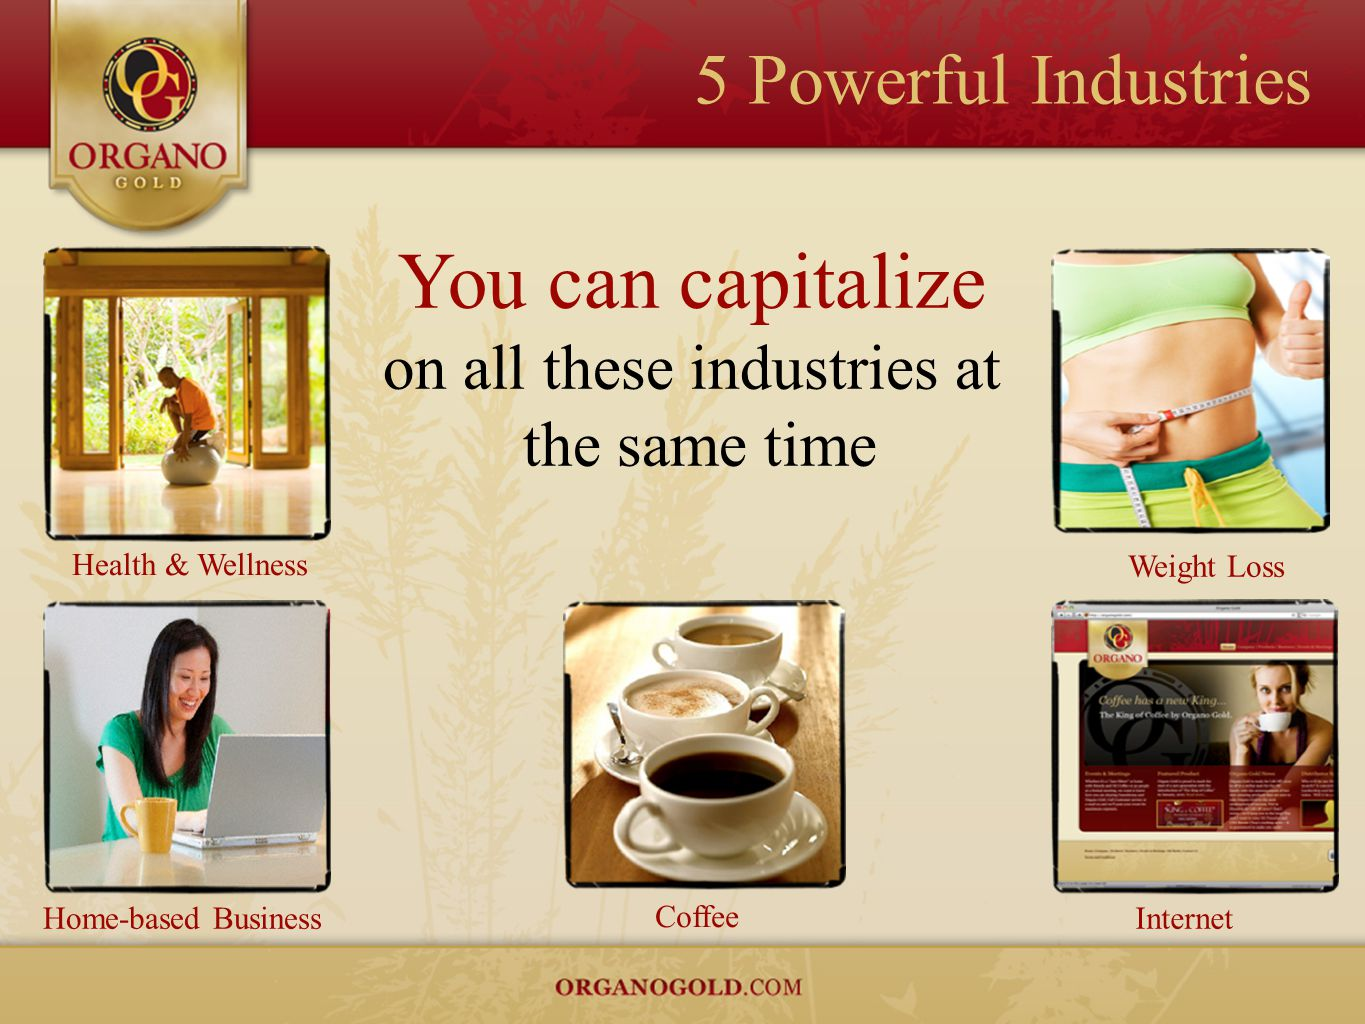 You can capitalize on all these industries at the same time